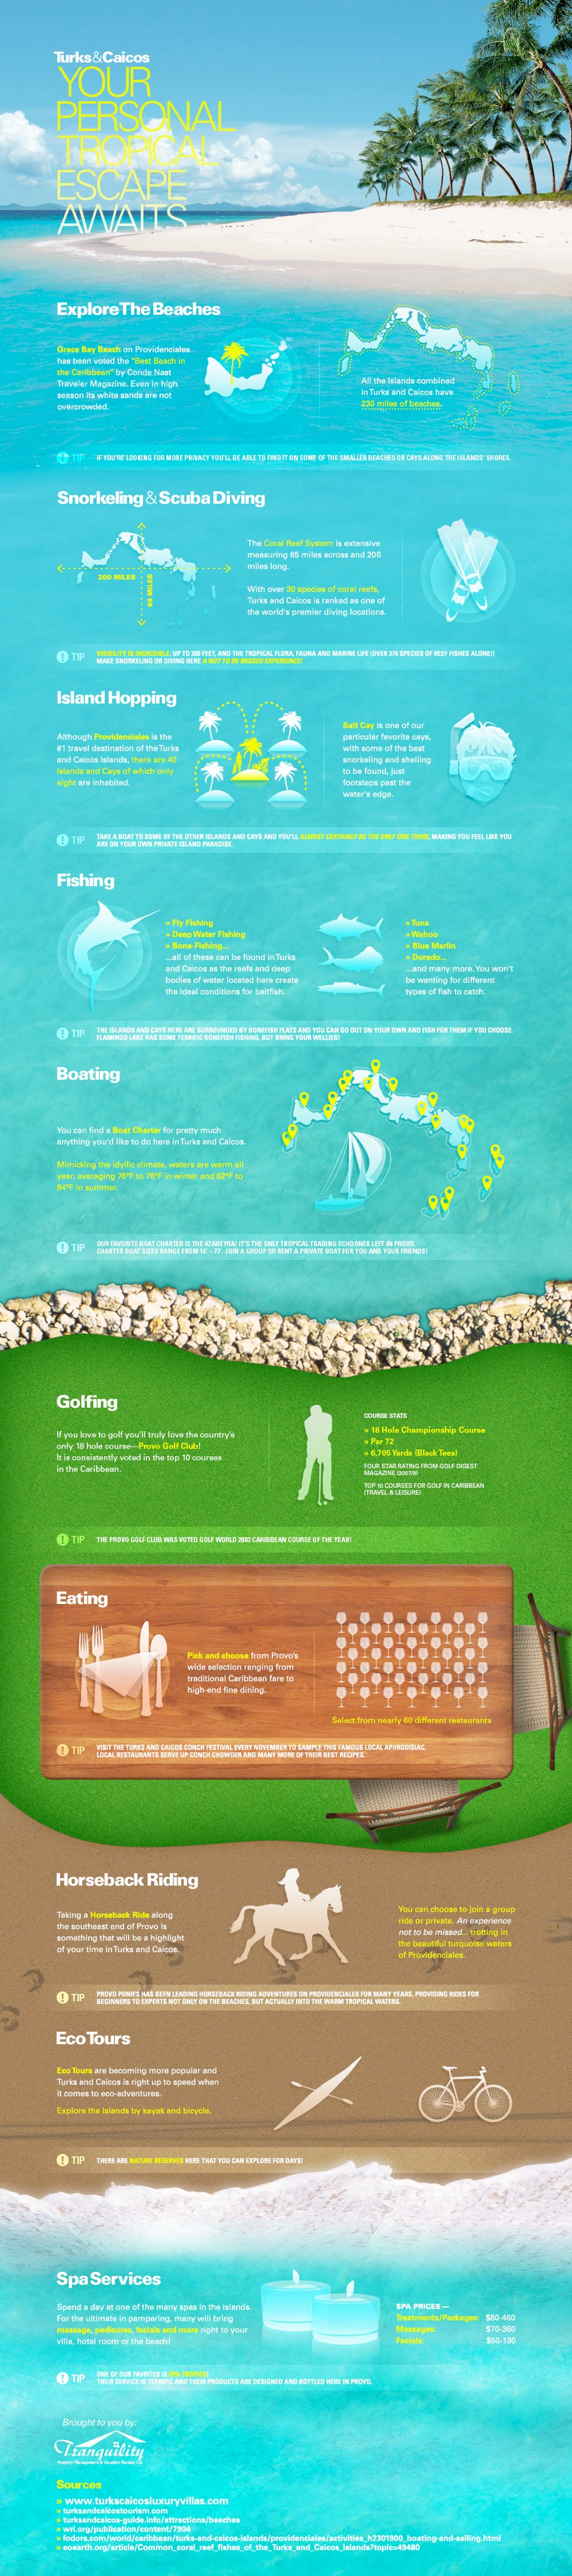 Turks & Caicos: Your Personal Tropical Escape Awaits infographic